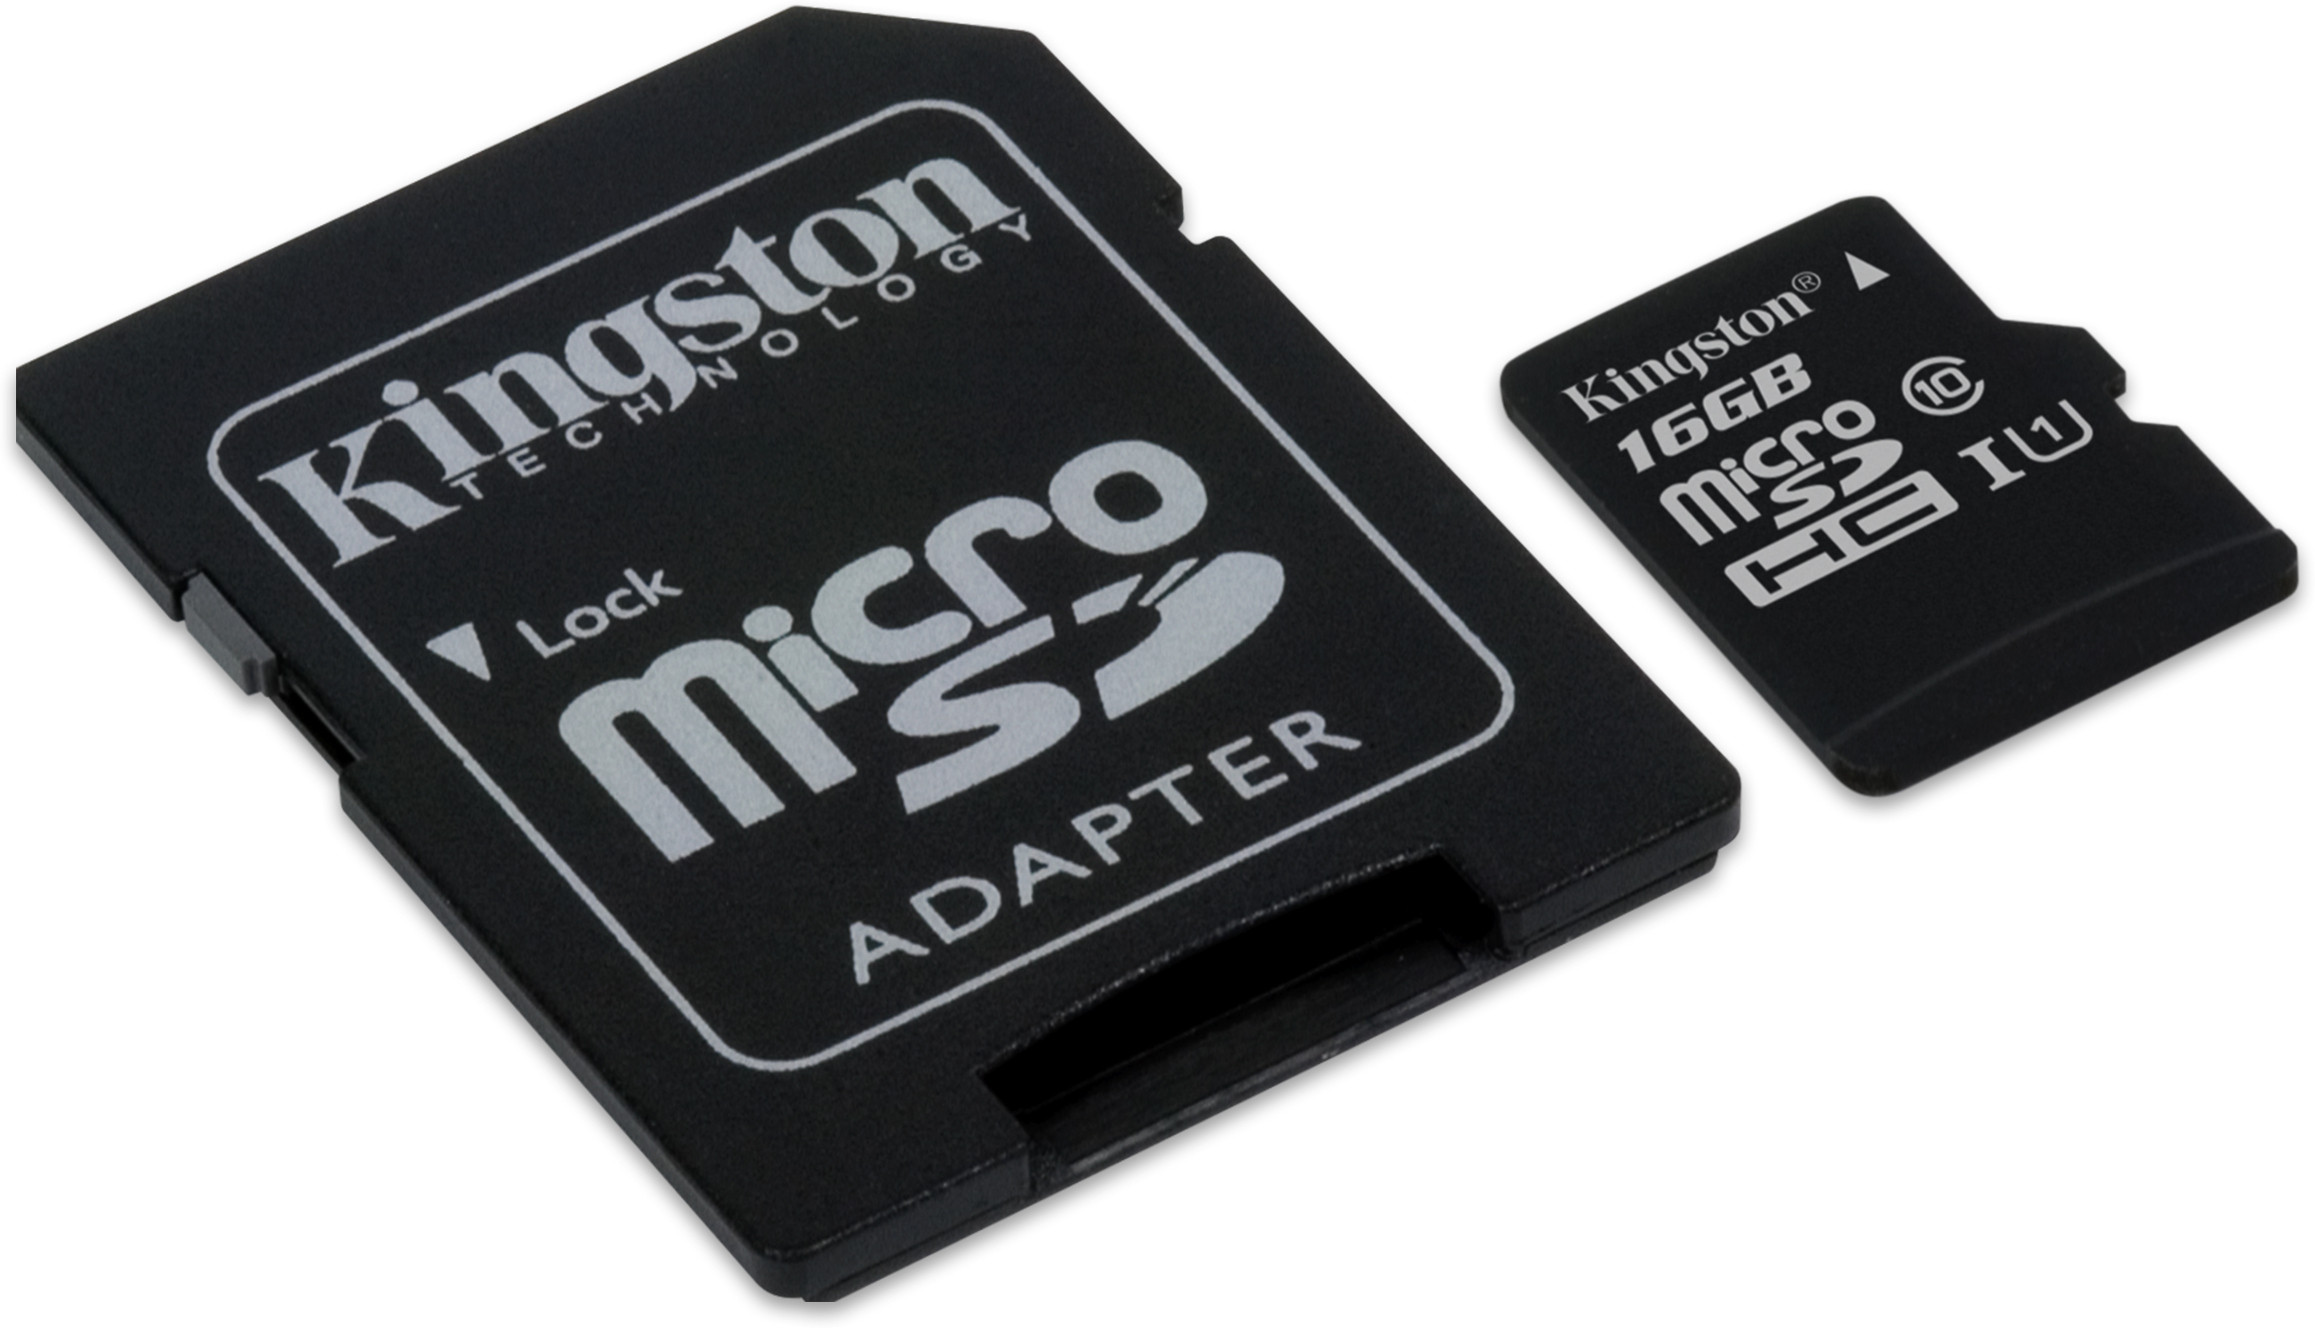 Flipkart - Kingston 16GB Memory Card